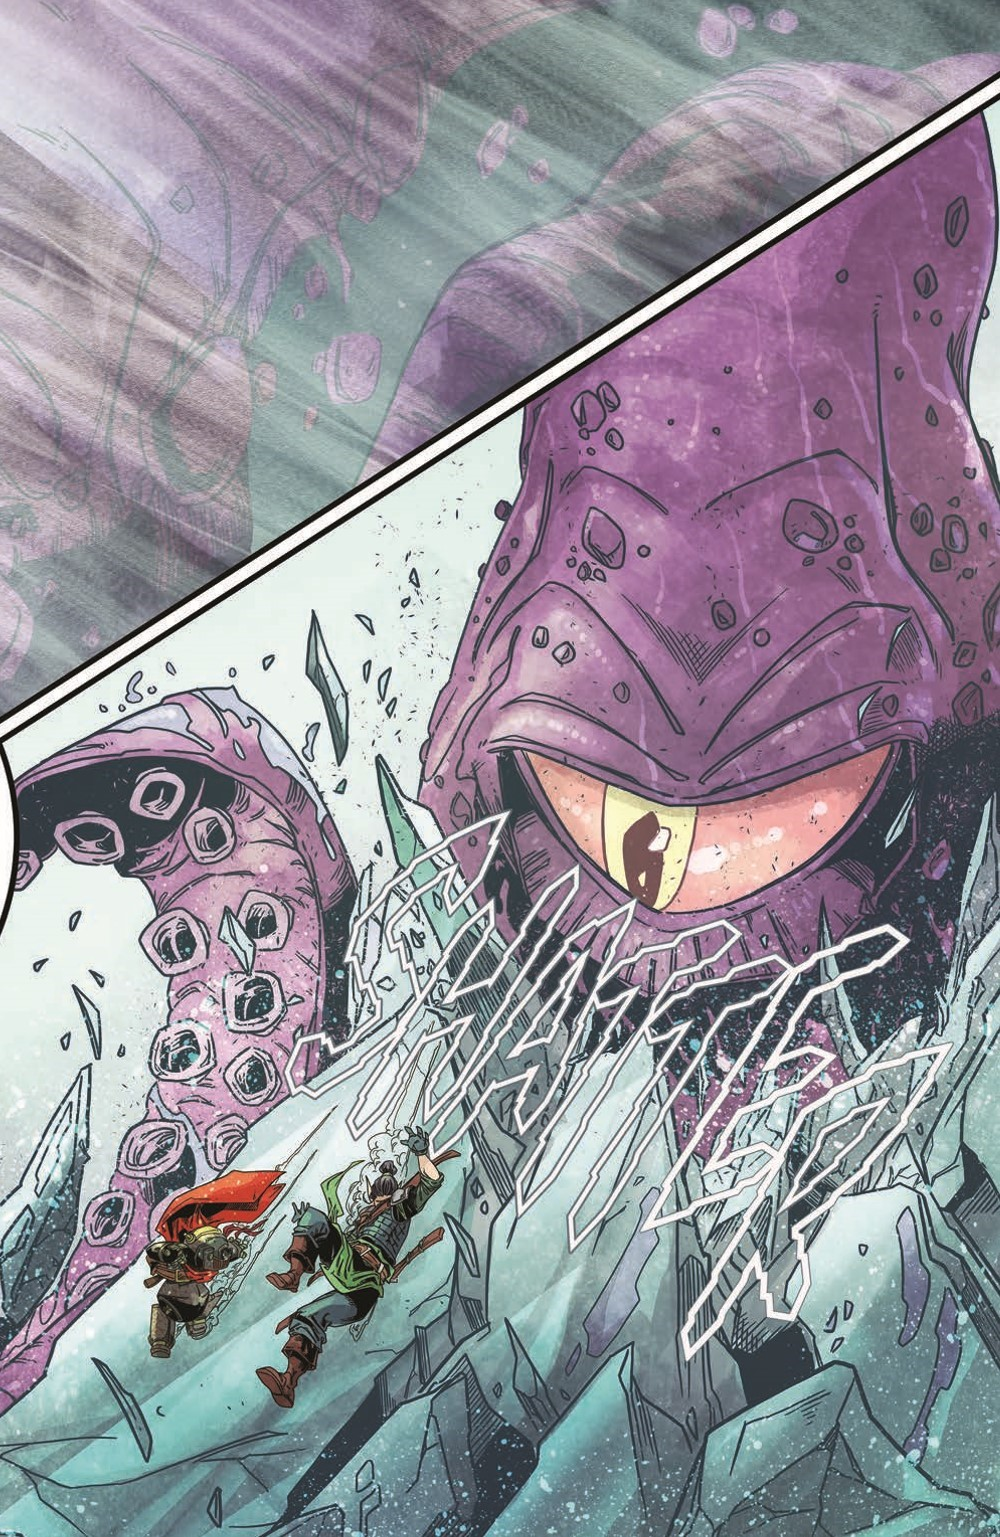 Canto-LH02_pr-5 ComicList Previews: CANTO III LIONHEARTED #2 (OF 6)